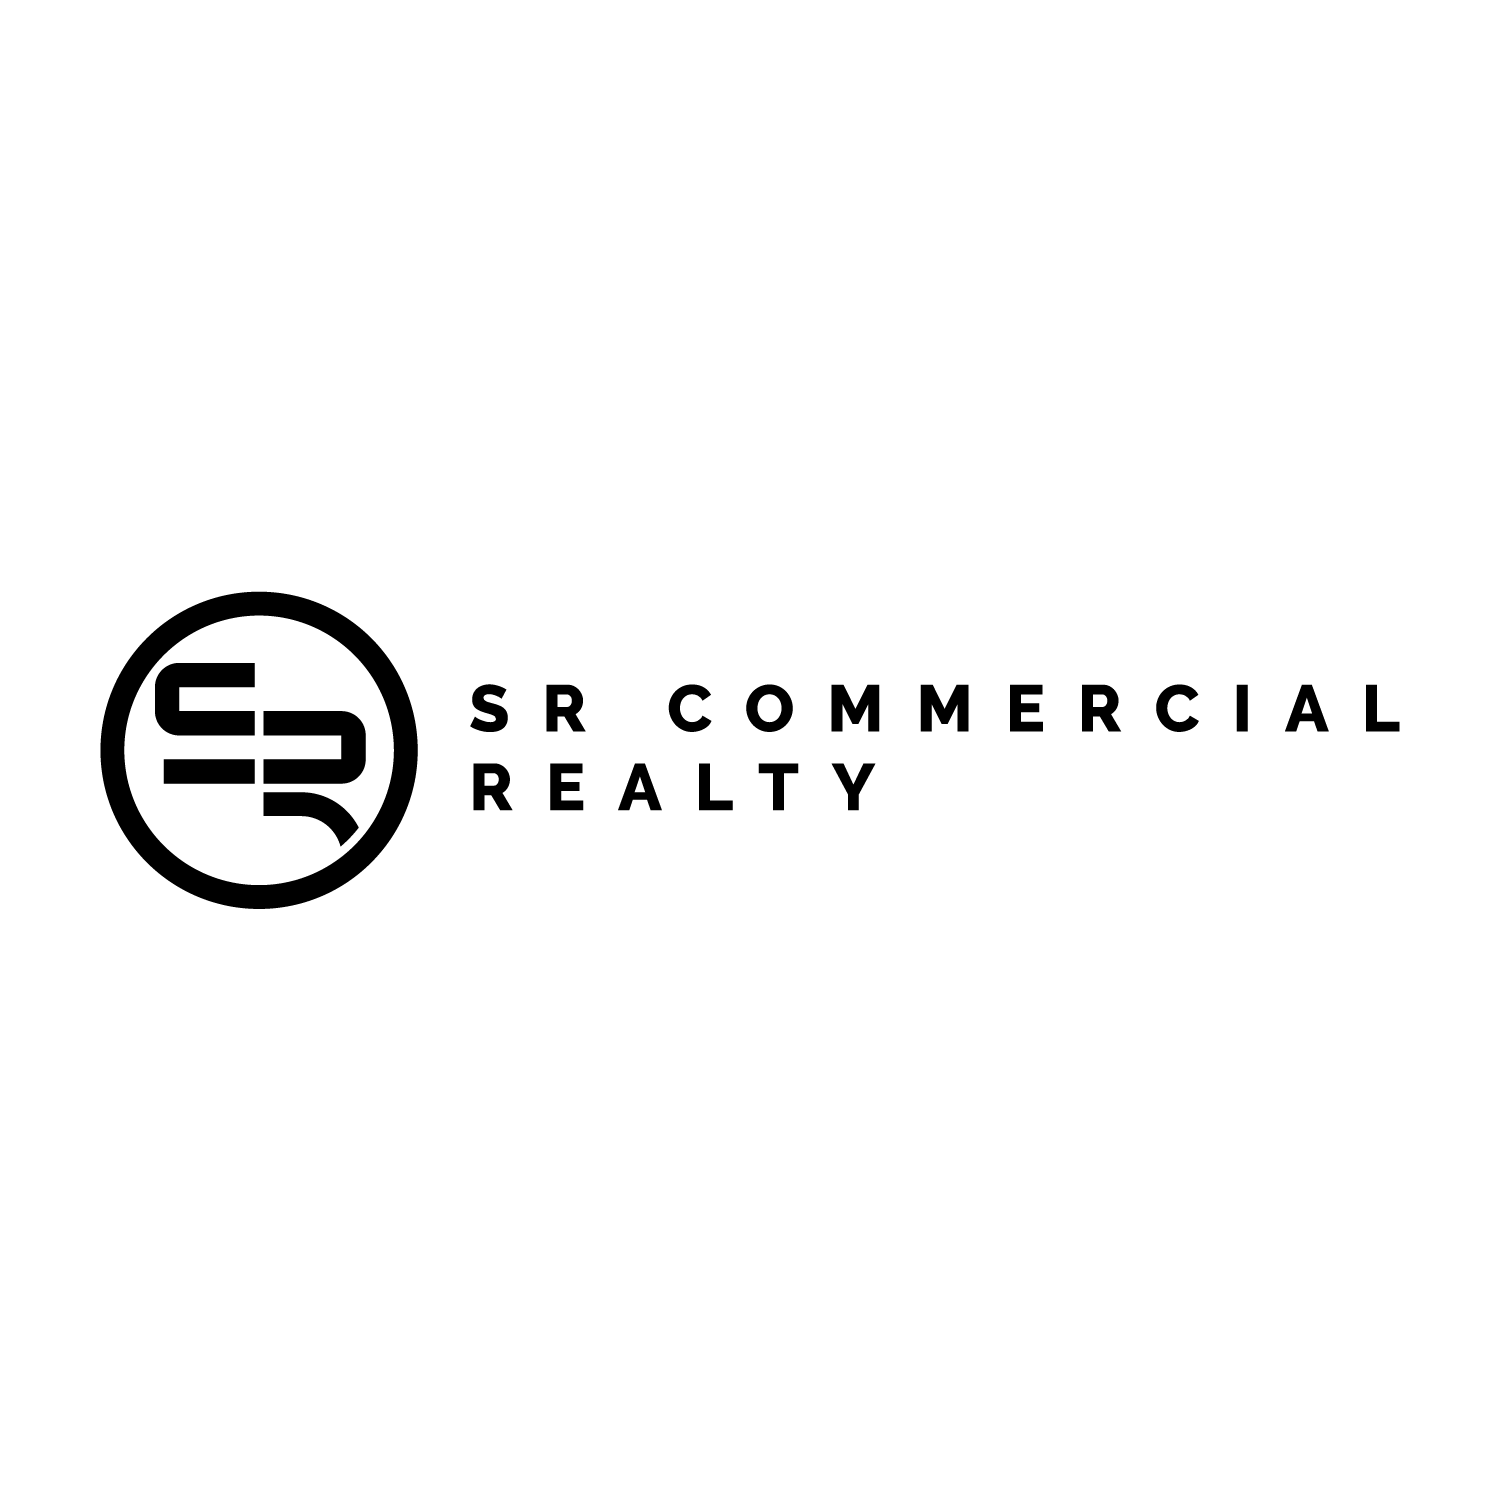 sr-commercial-final-logo-05.png